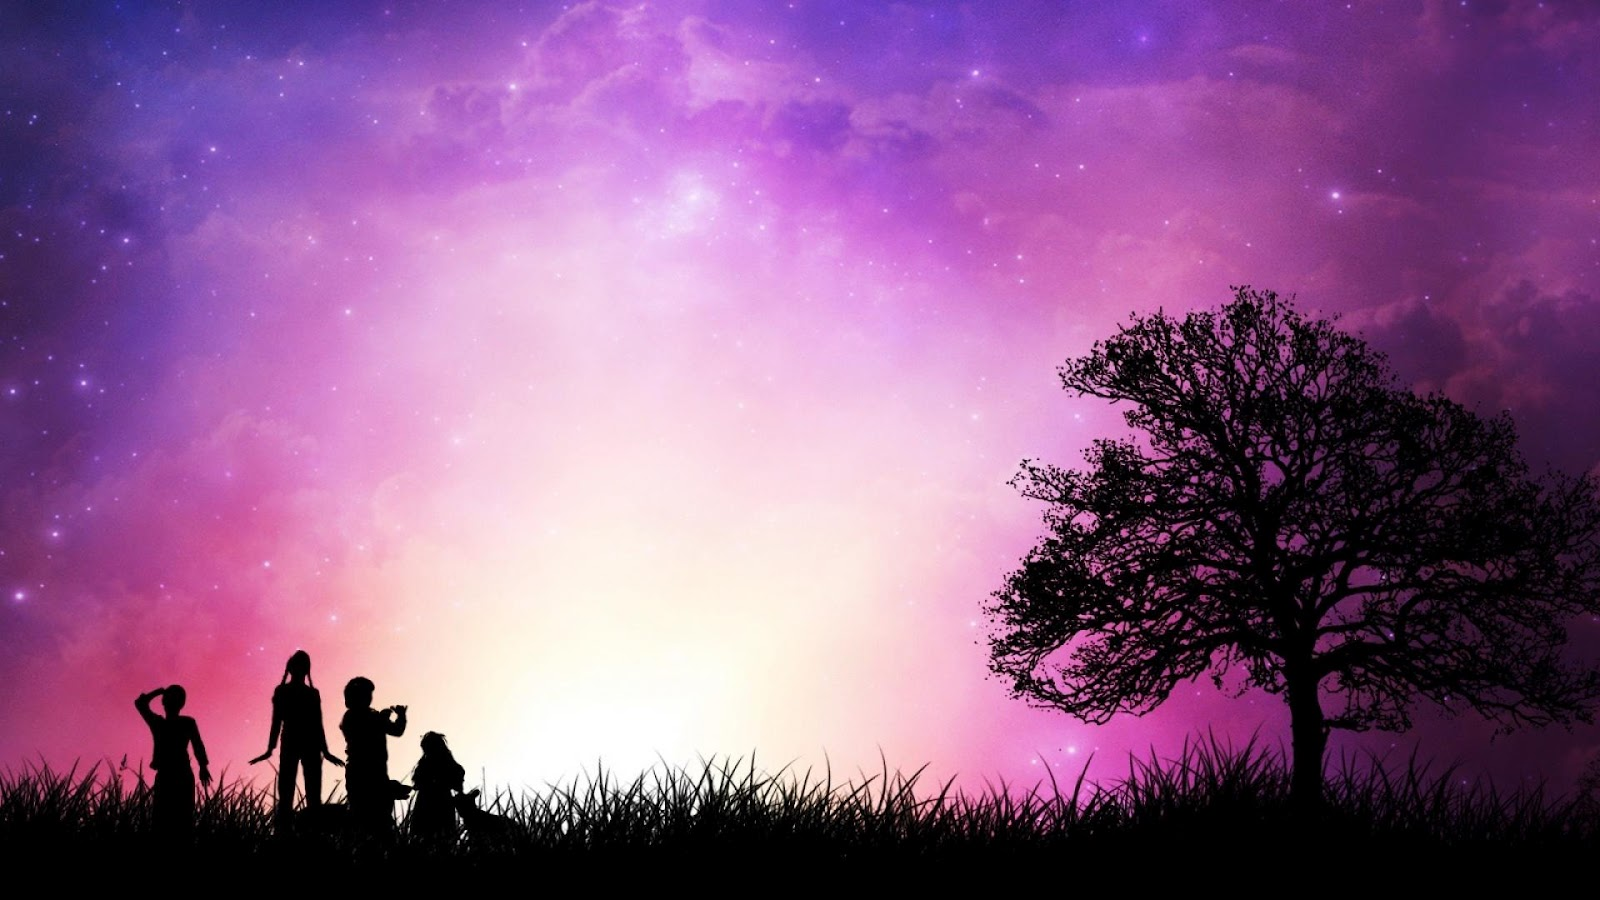 Romantic Wallpapers HD Pictures HD Wallpapers ...